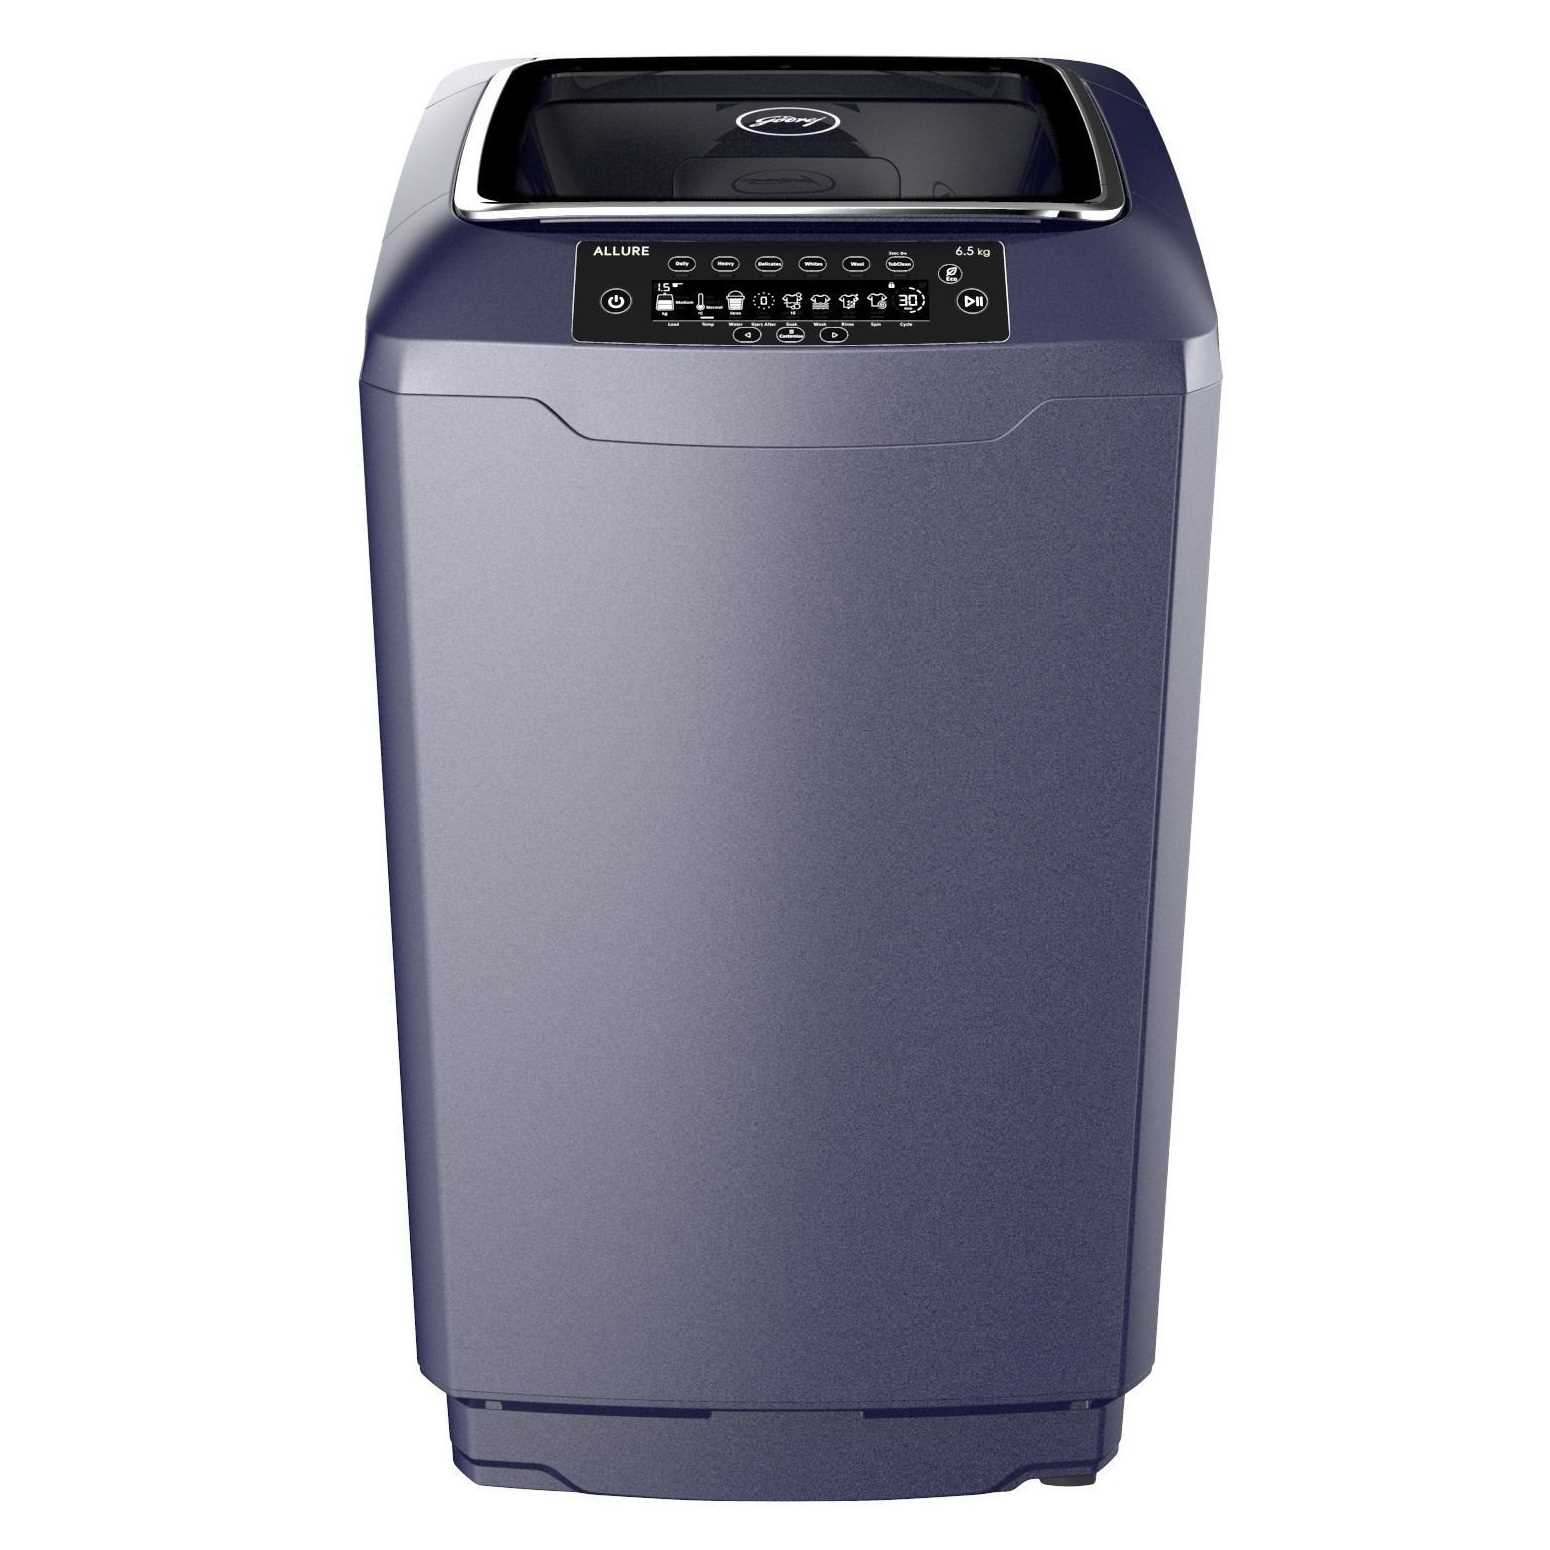 Godrej WT EON Allure 650 PANMP 6.5 Kg Fully Automatic Top Load Washing Machine